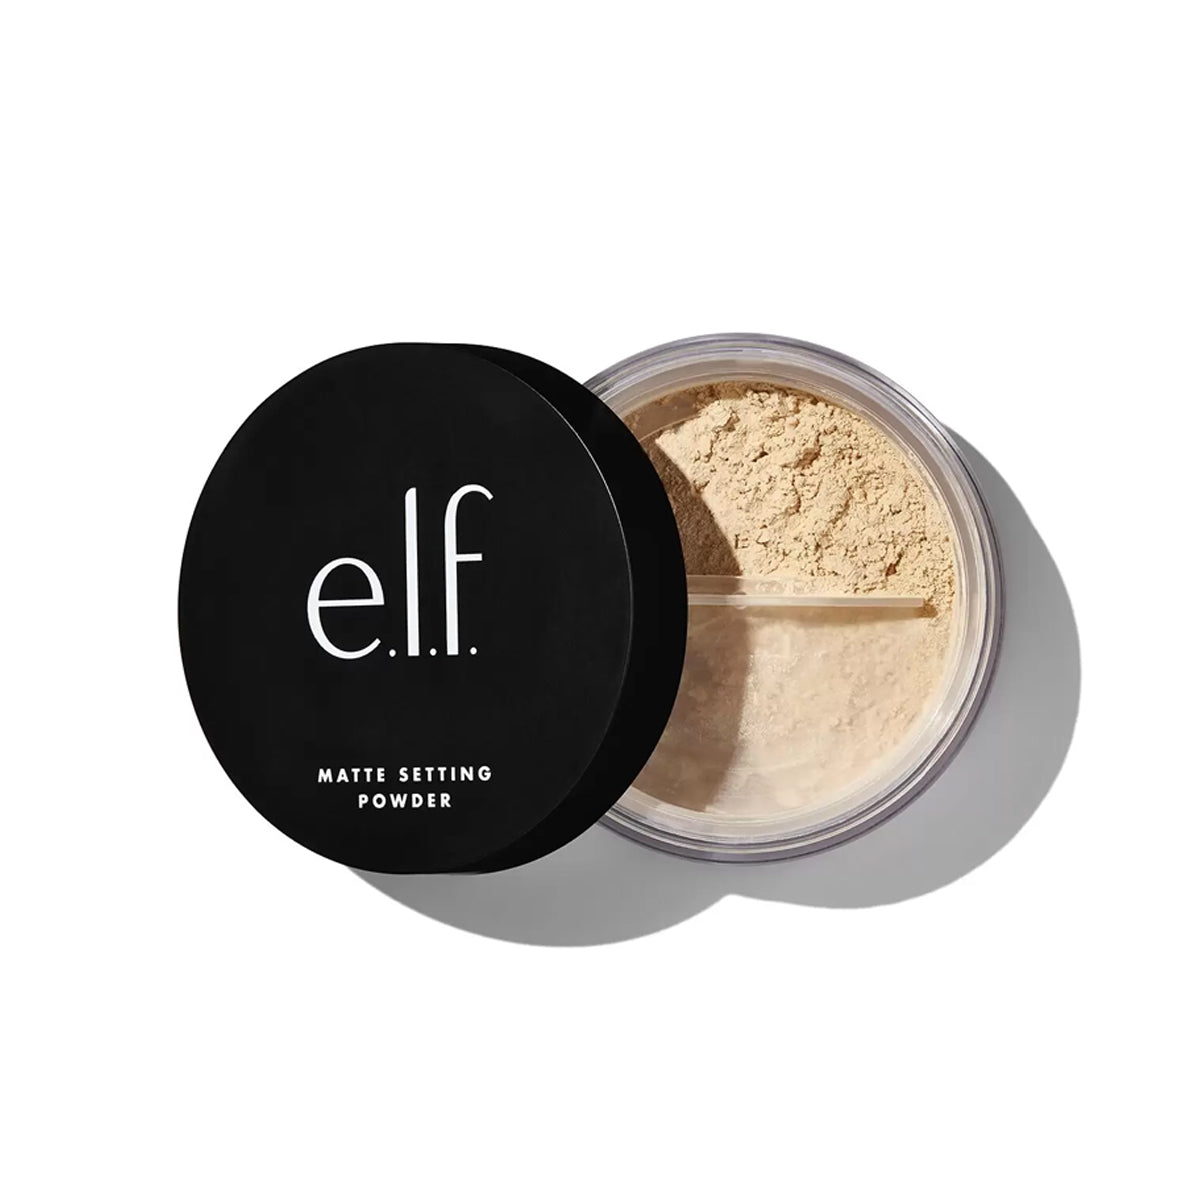 ELF MATTE SETTING POWDER